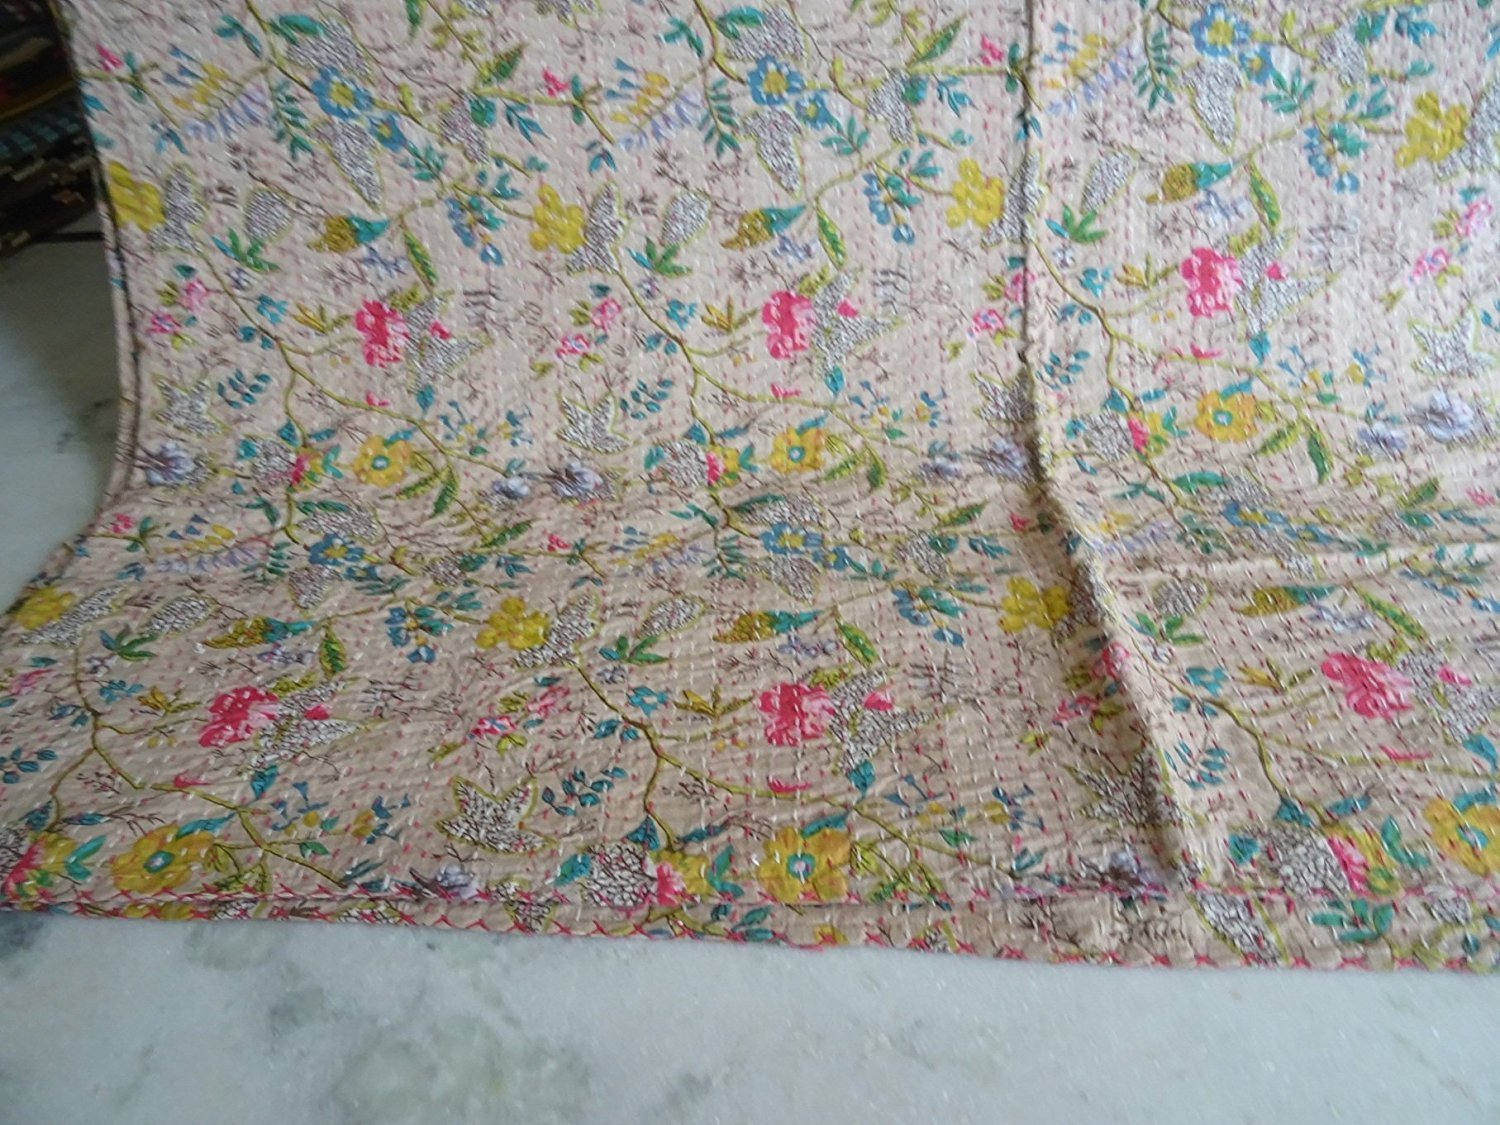 Indian Multicolor Paisley PARADISE Print King Size Kantha Quilt , Kantha Blanket, Bed Cover, King Kantha bedspread, Bohemian Bedding Kantha (Begie) by Sophia Art (Image #4)